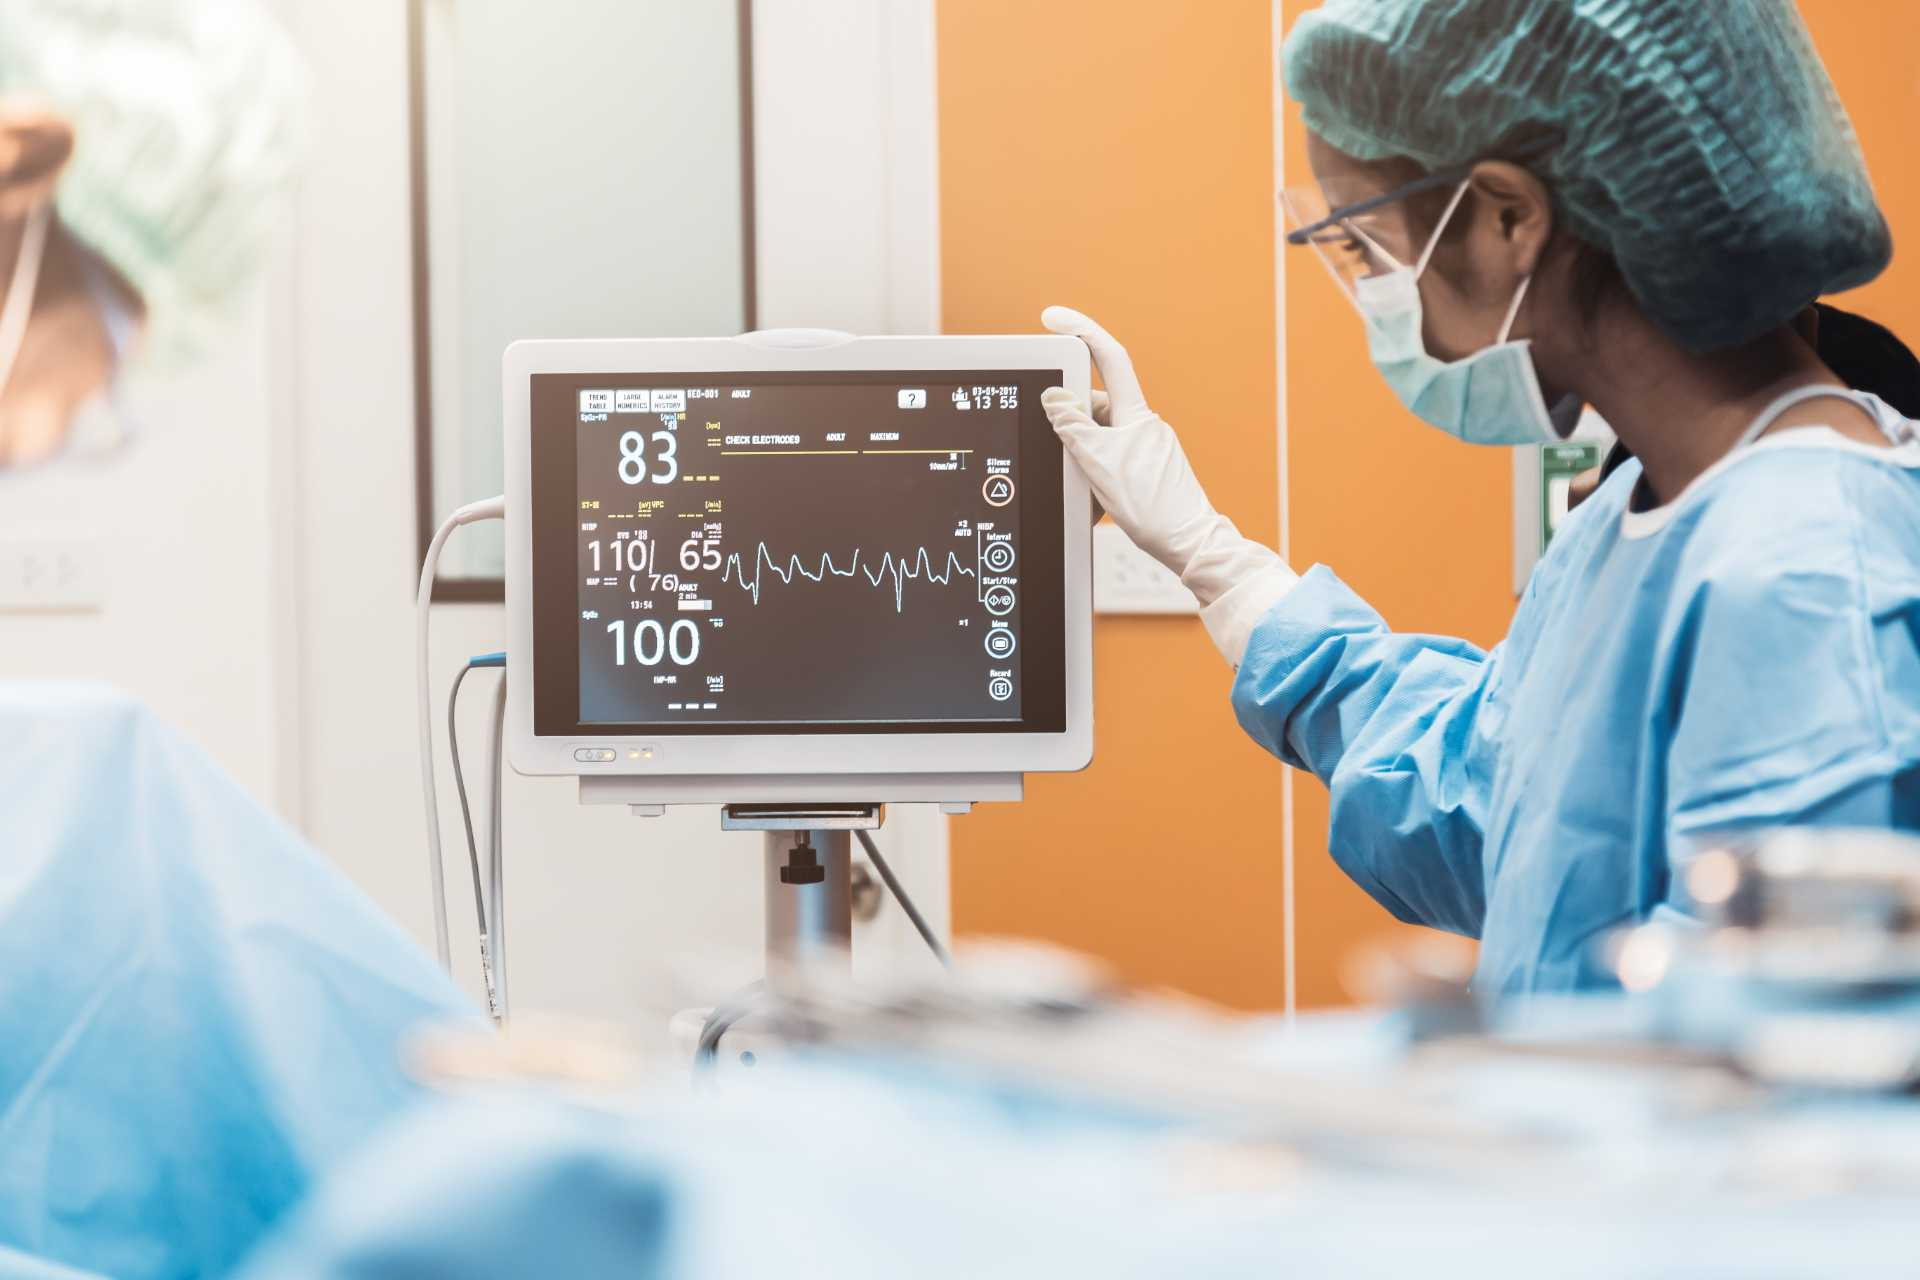 nurse checking vital screen in surgical room